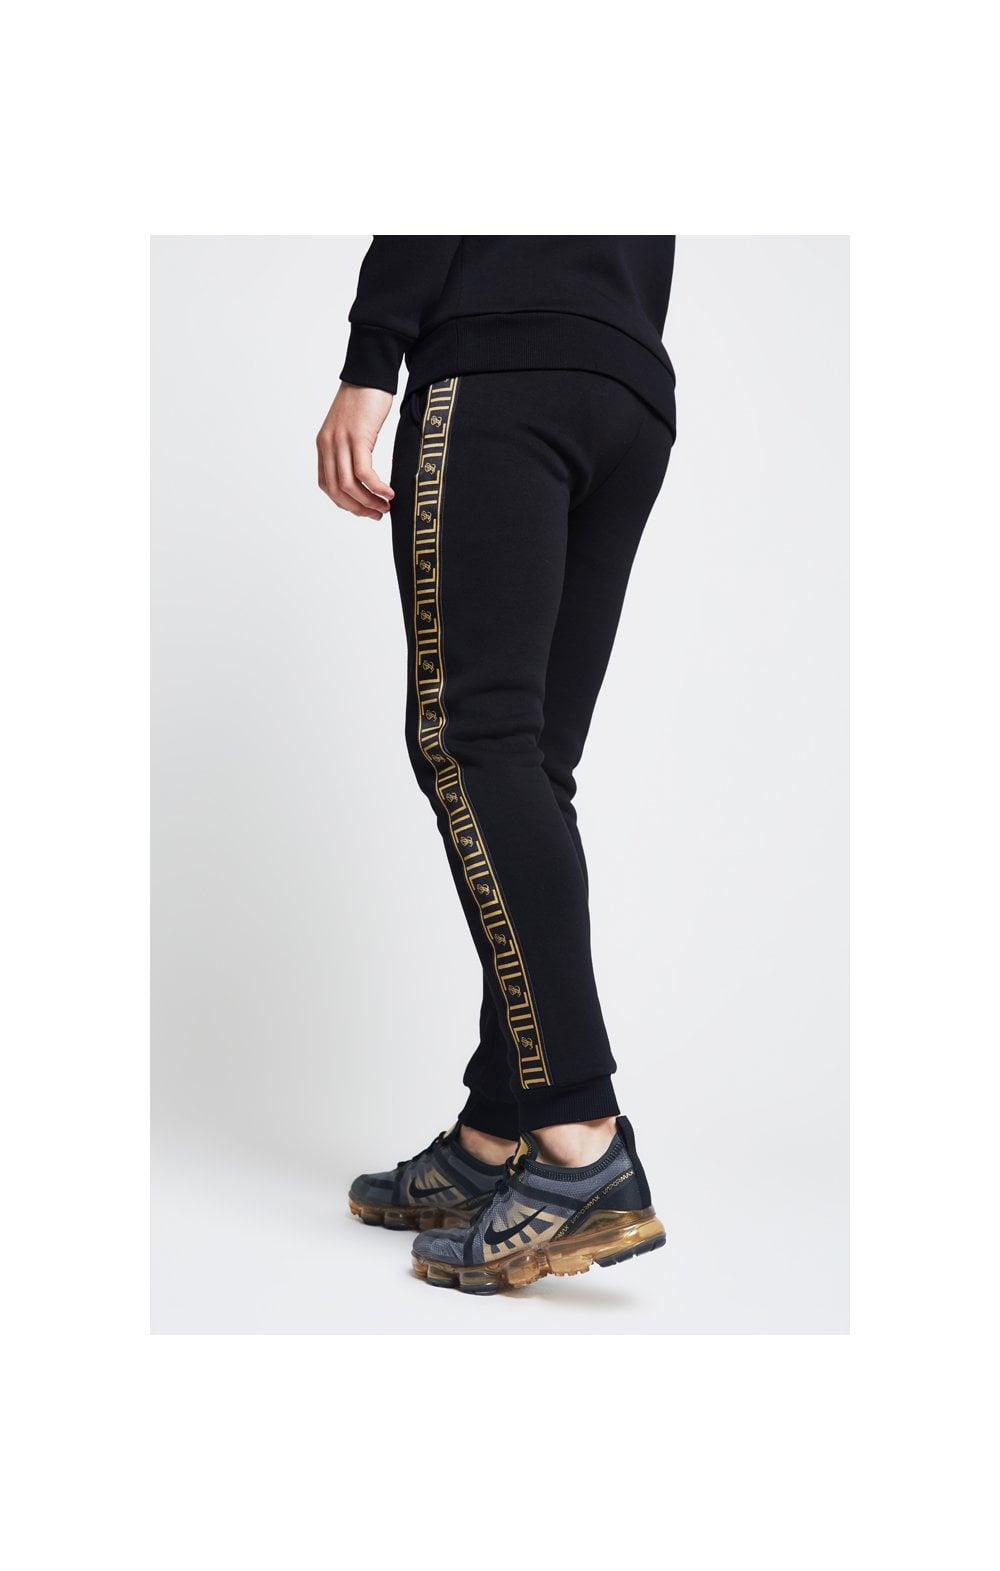 Load image into Gallery viewer, Illusive London Taped Cuffed Joggers – Black (4)